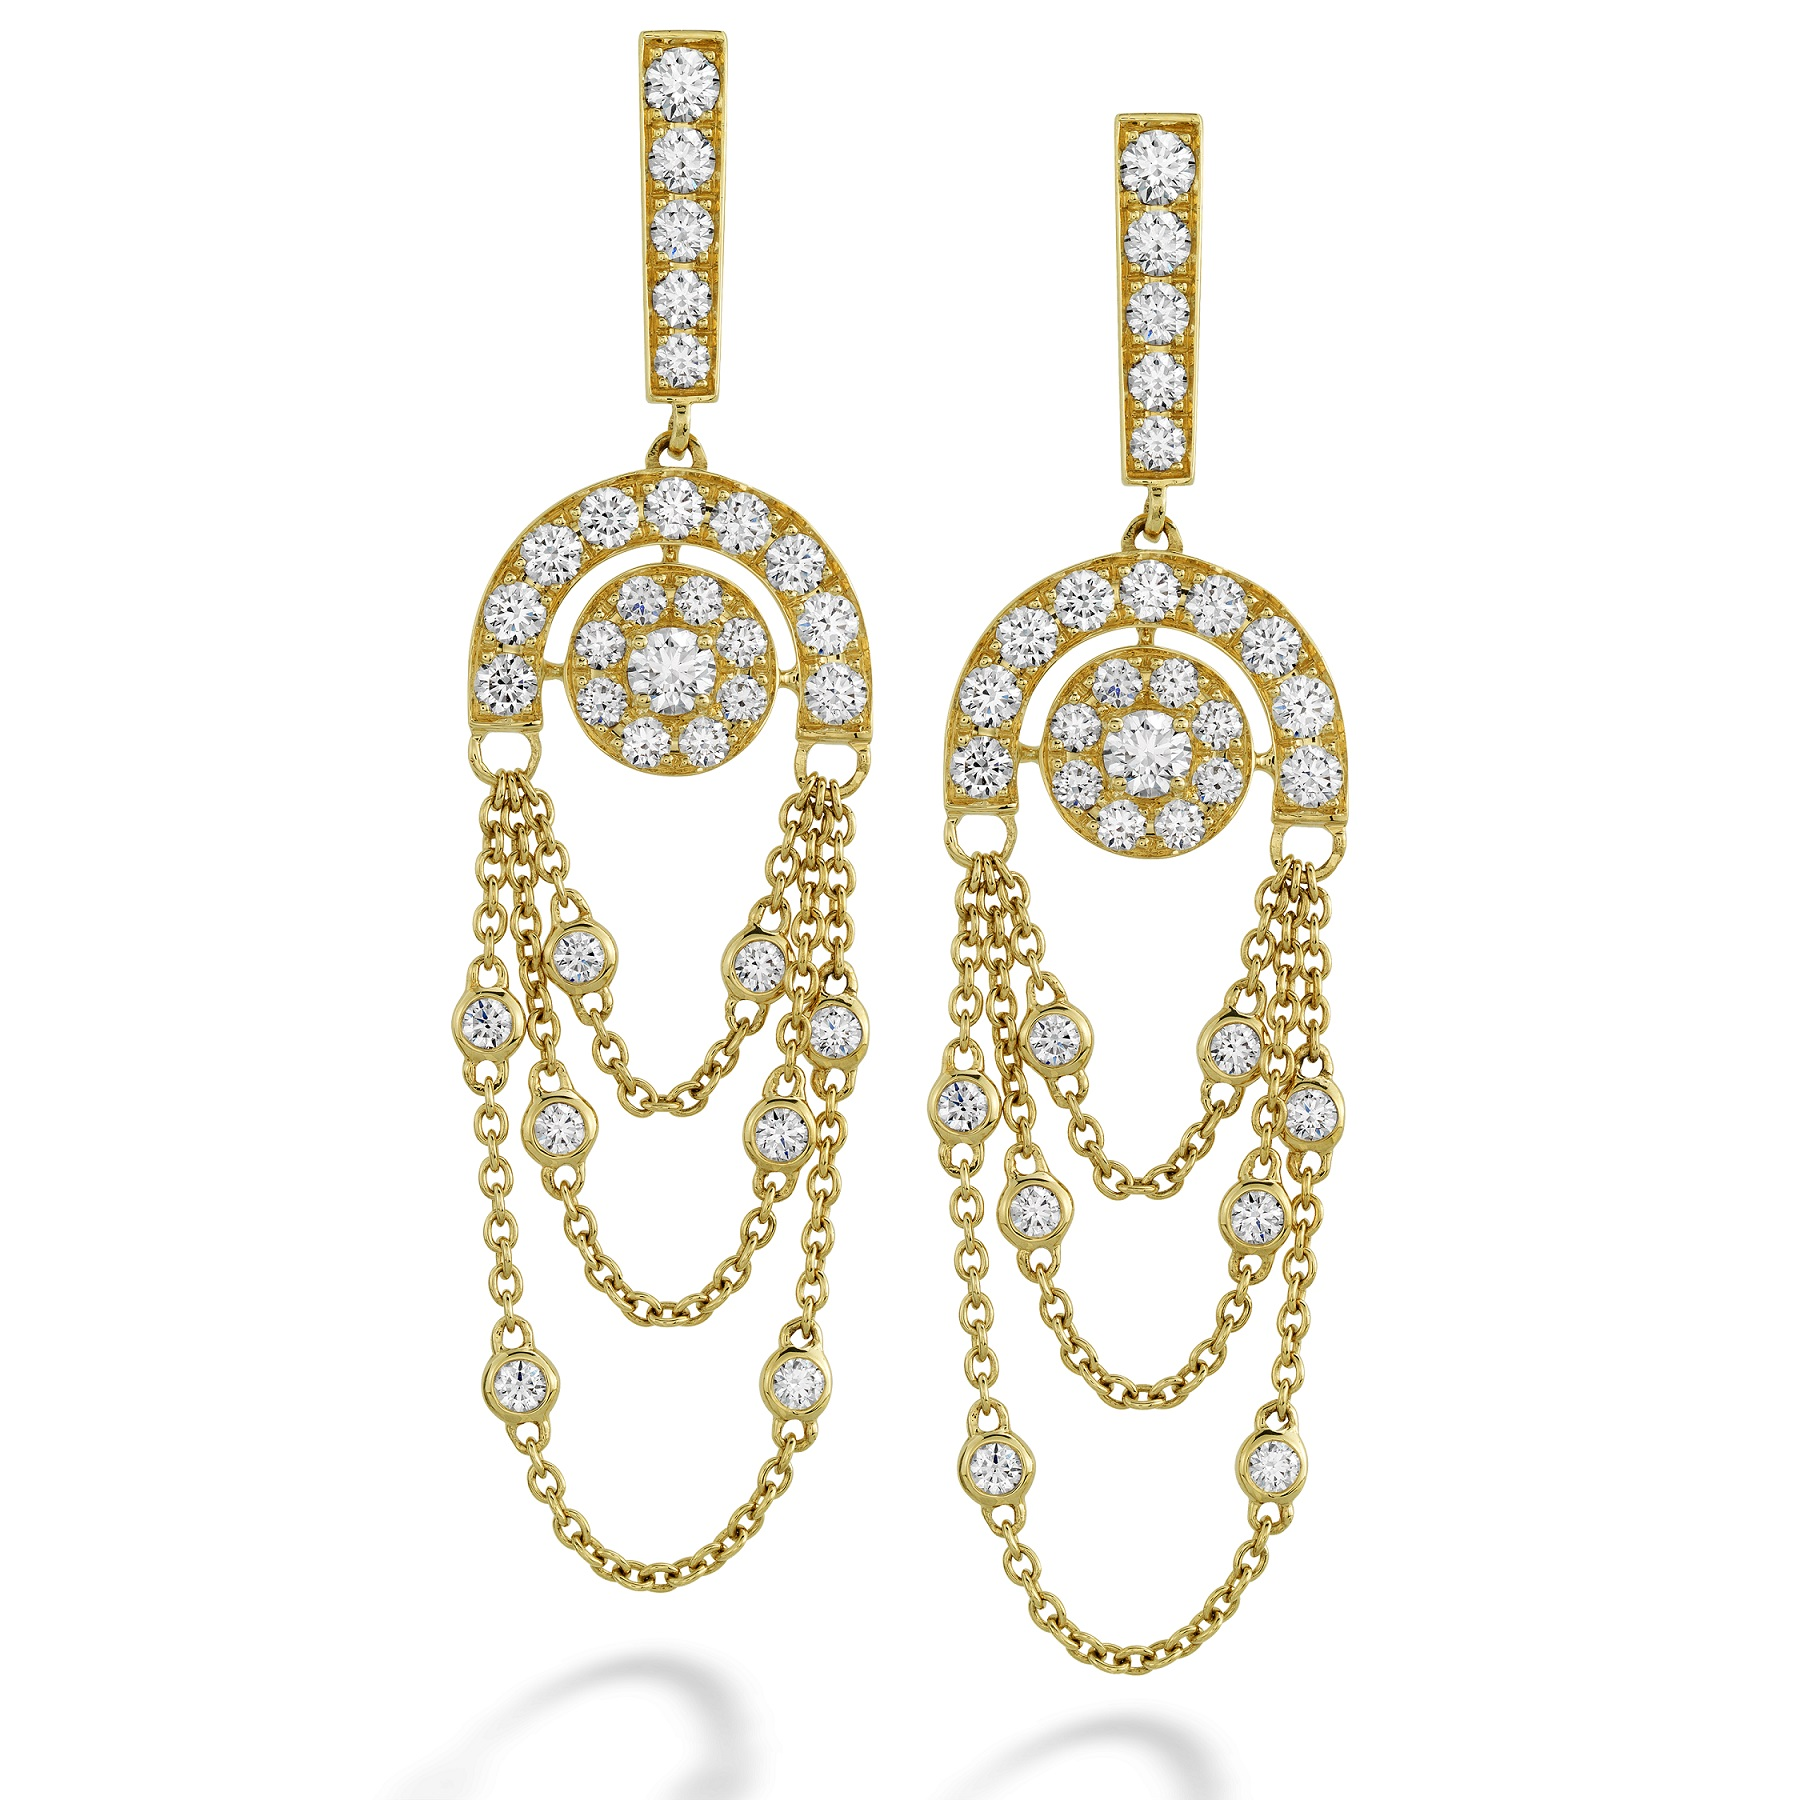 Inspiration Chandelier Earrings Yellow Gold 1